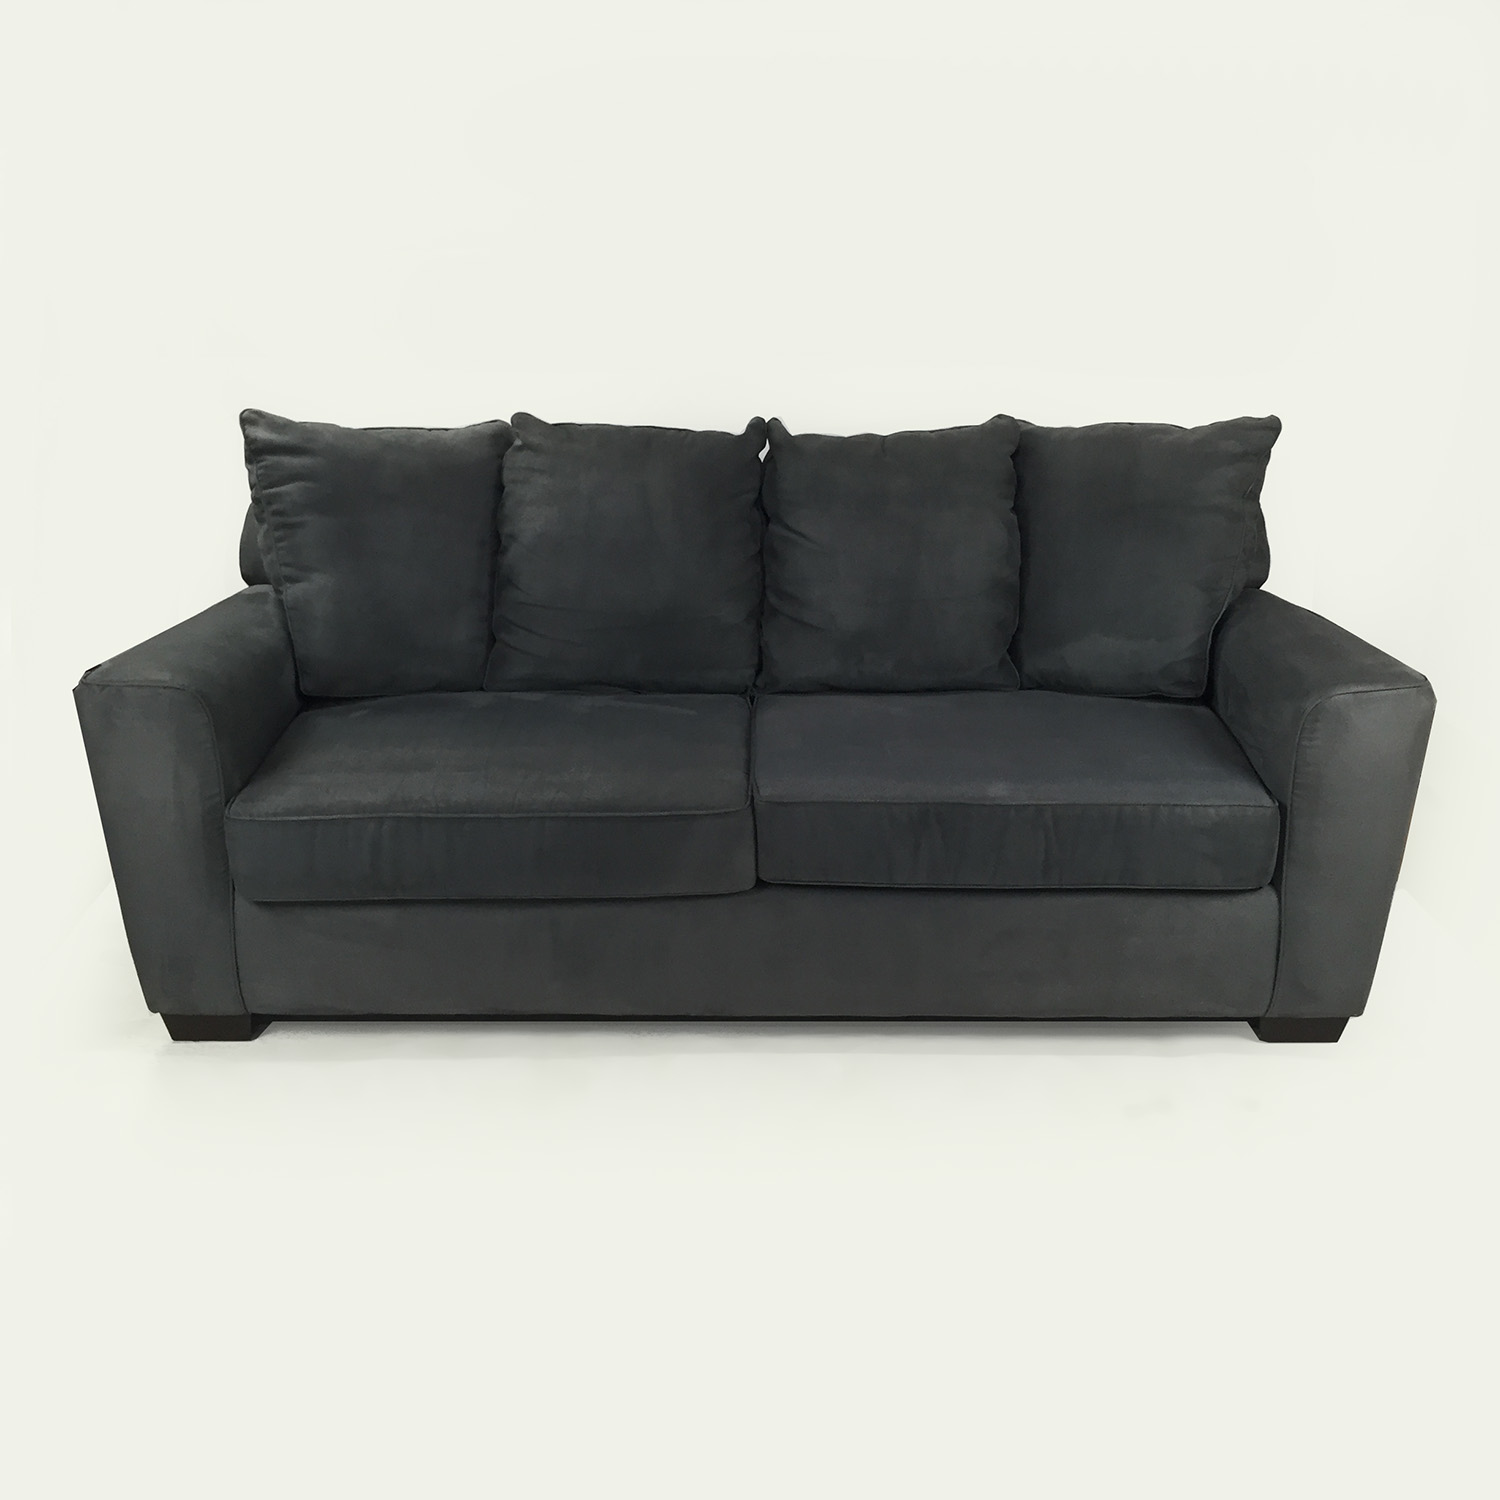 Raymour and Flanigan Raymour & Flanigan Microfiber Sofa dimensions